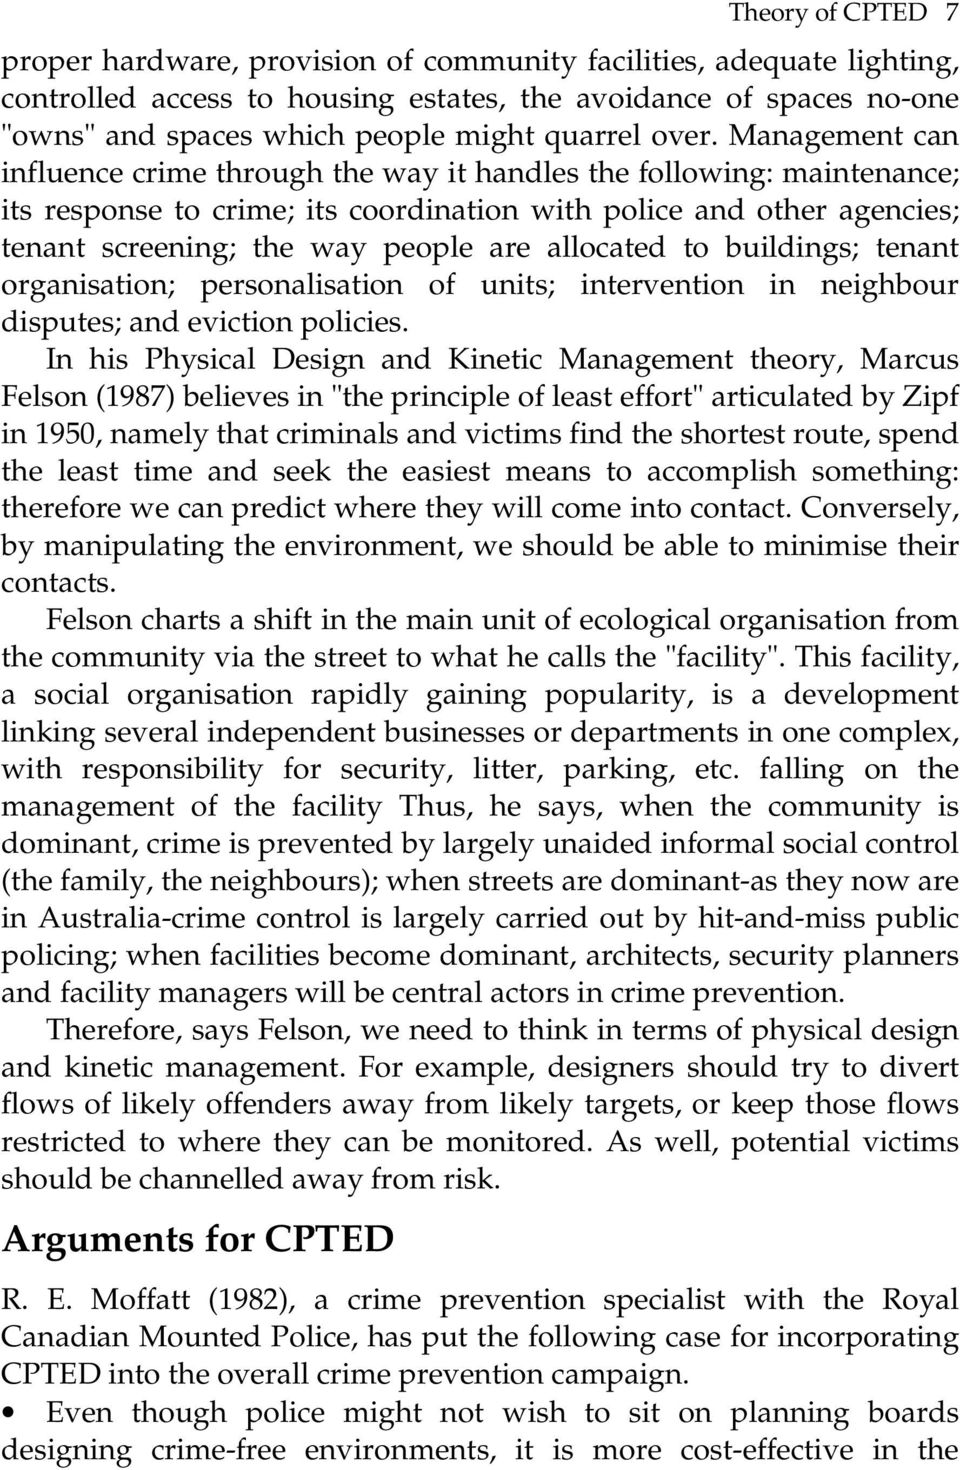 Management can influence crime through the way it handles the following: maintenance; its response to crime; its coordination with police and other agencies; tenant screening; the way people are